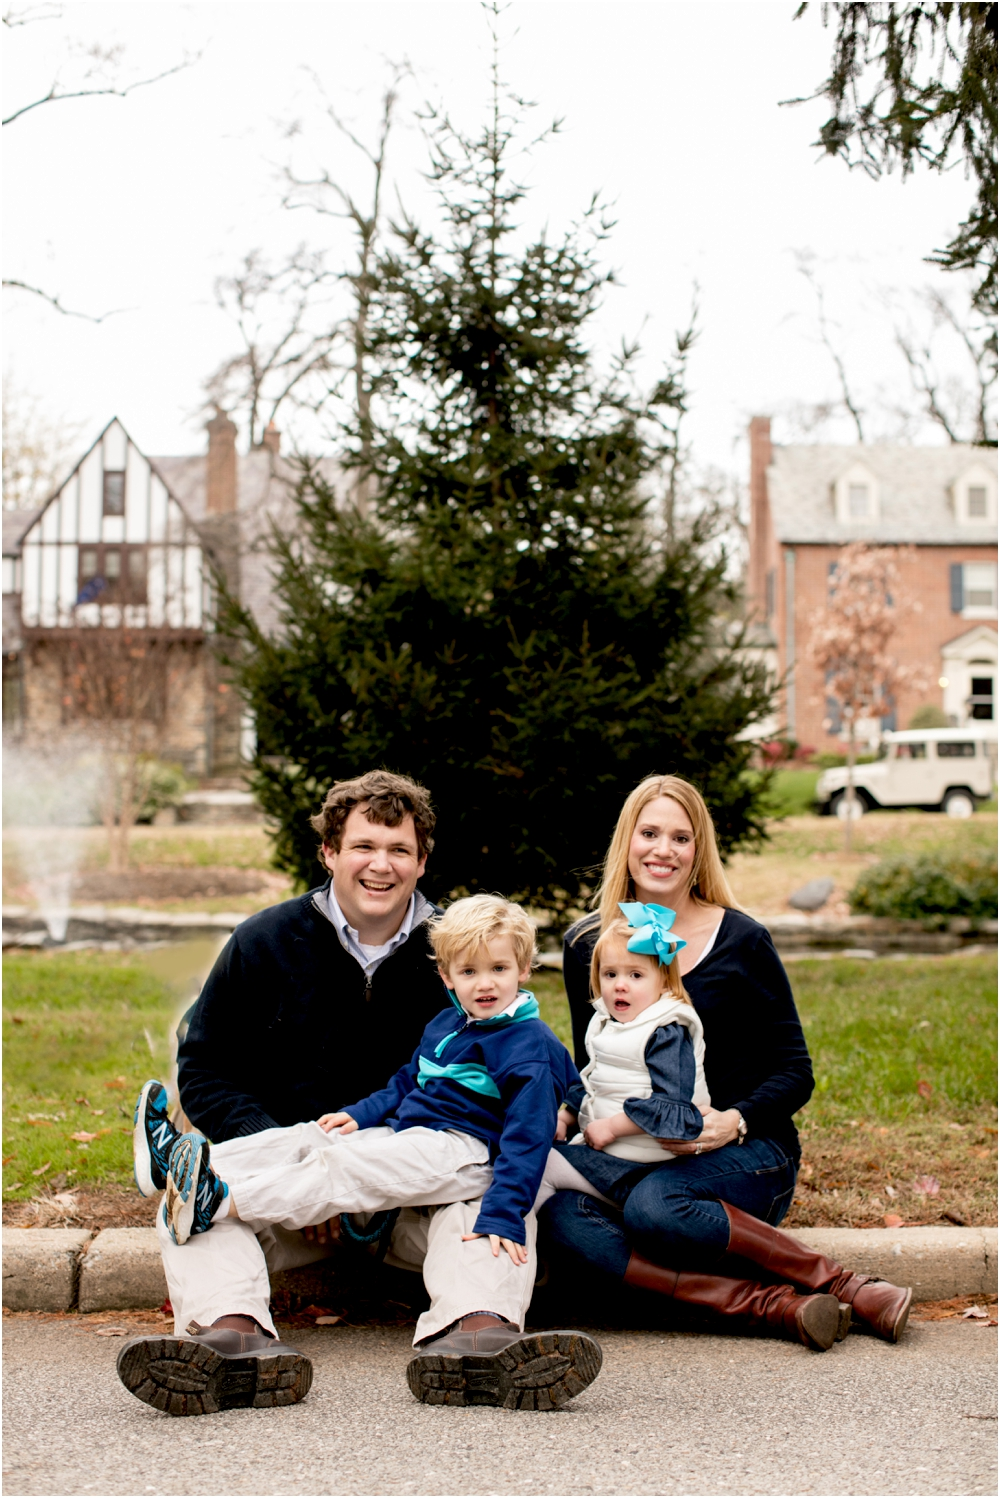 kate john schmick roland park family session living radiant photography_0015.jpg